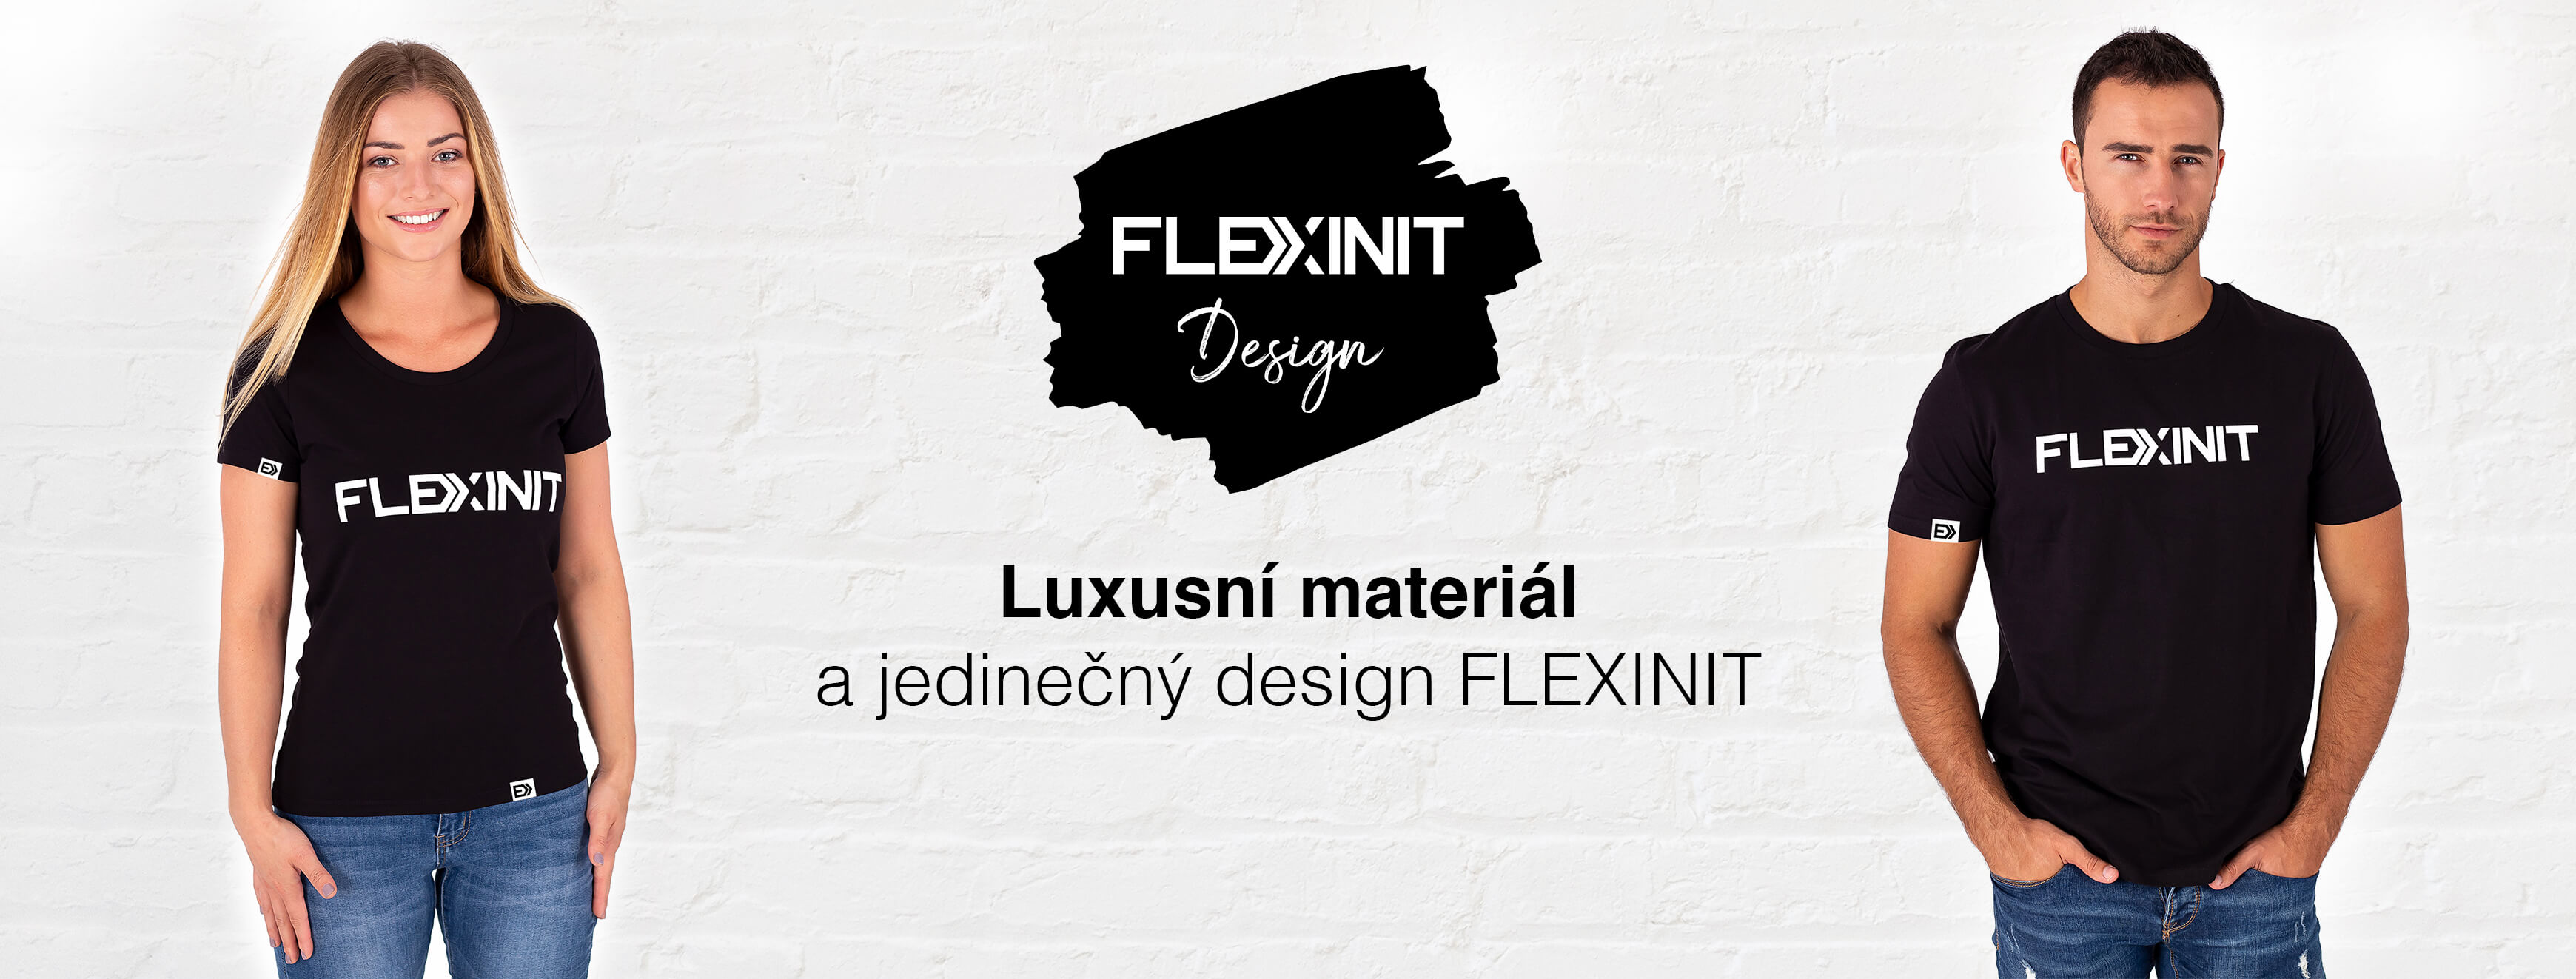 Flexinit Design